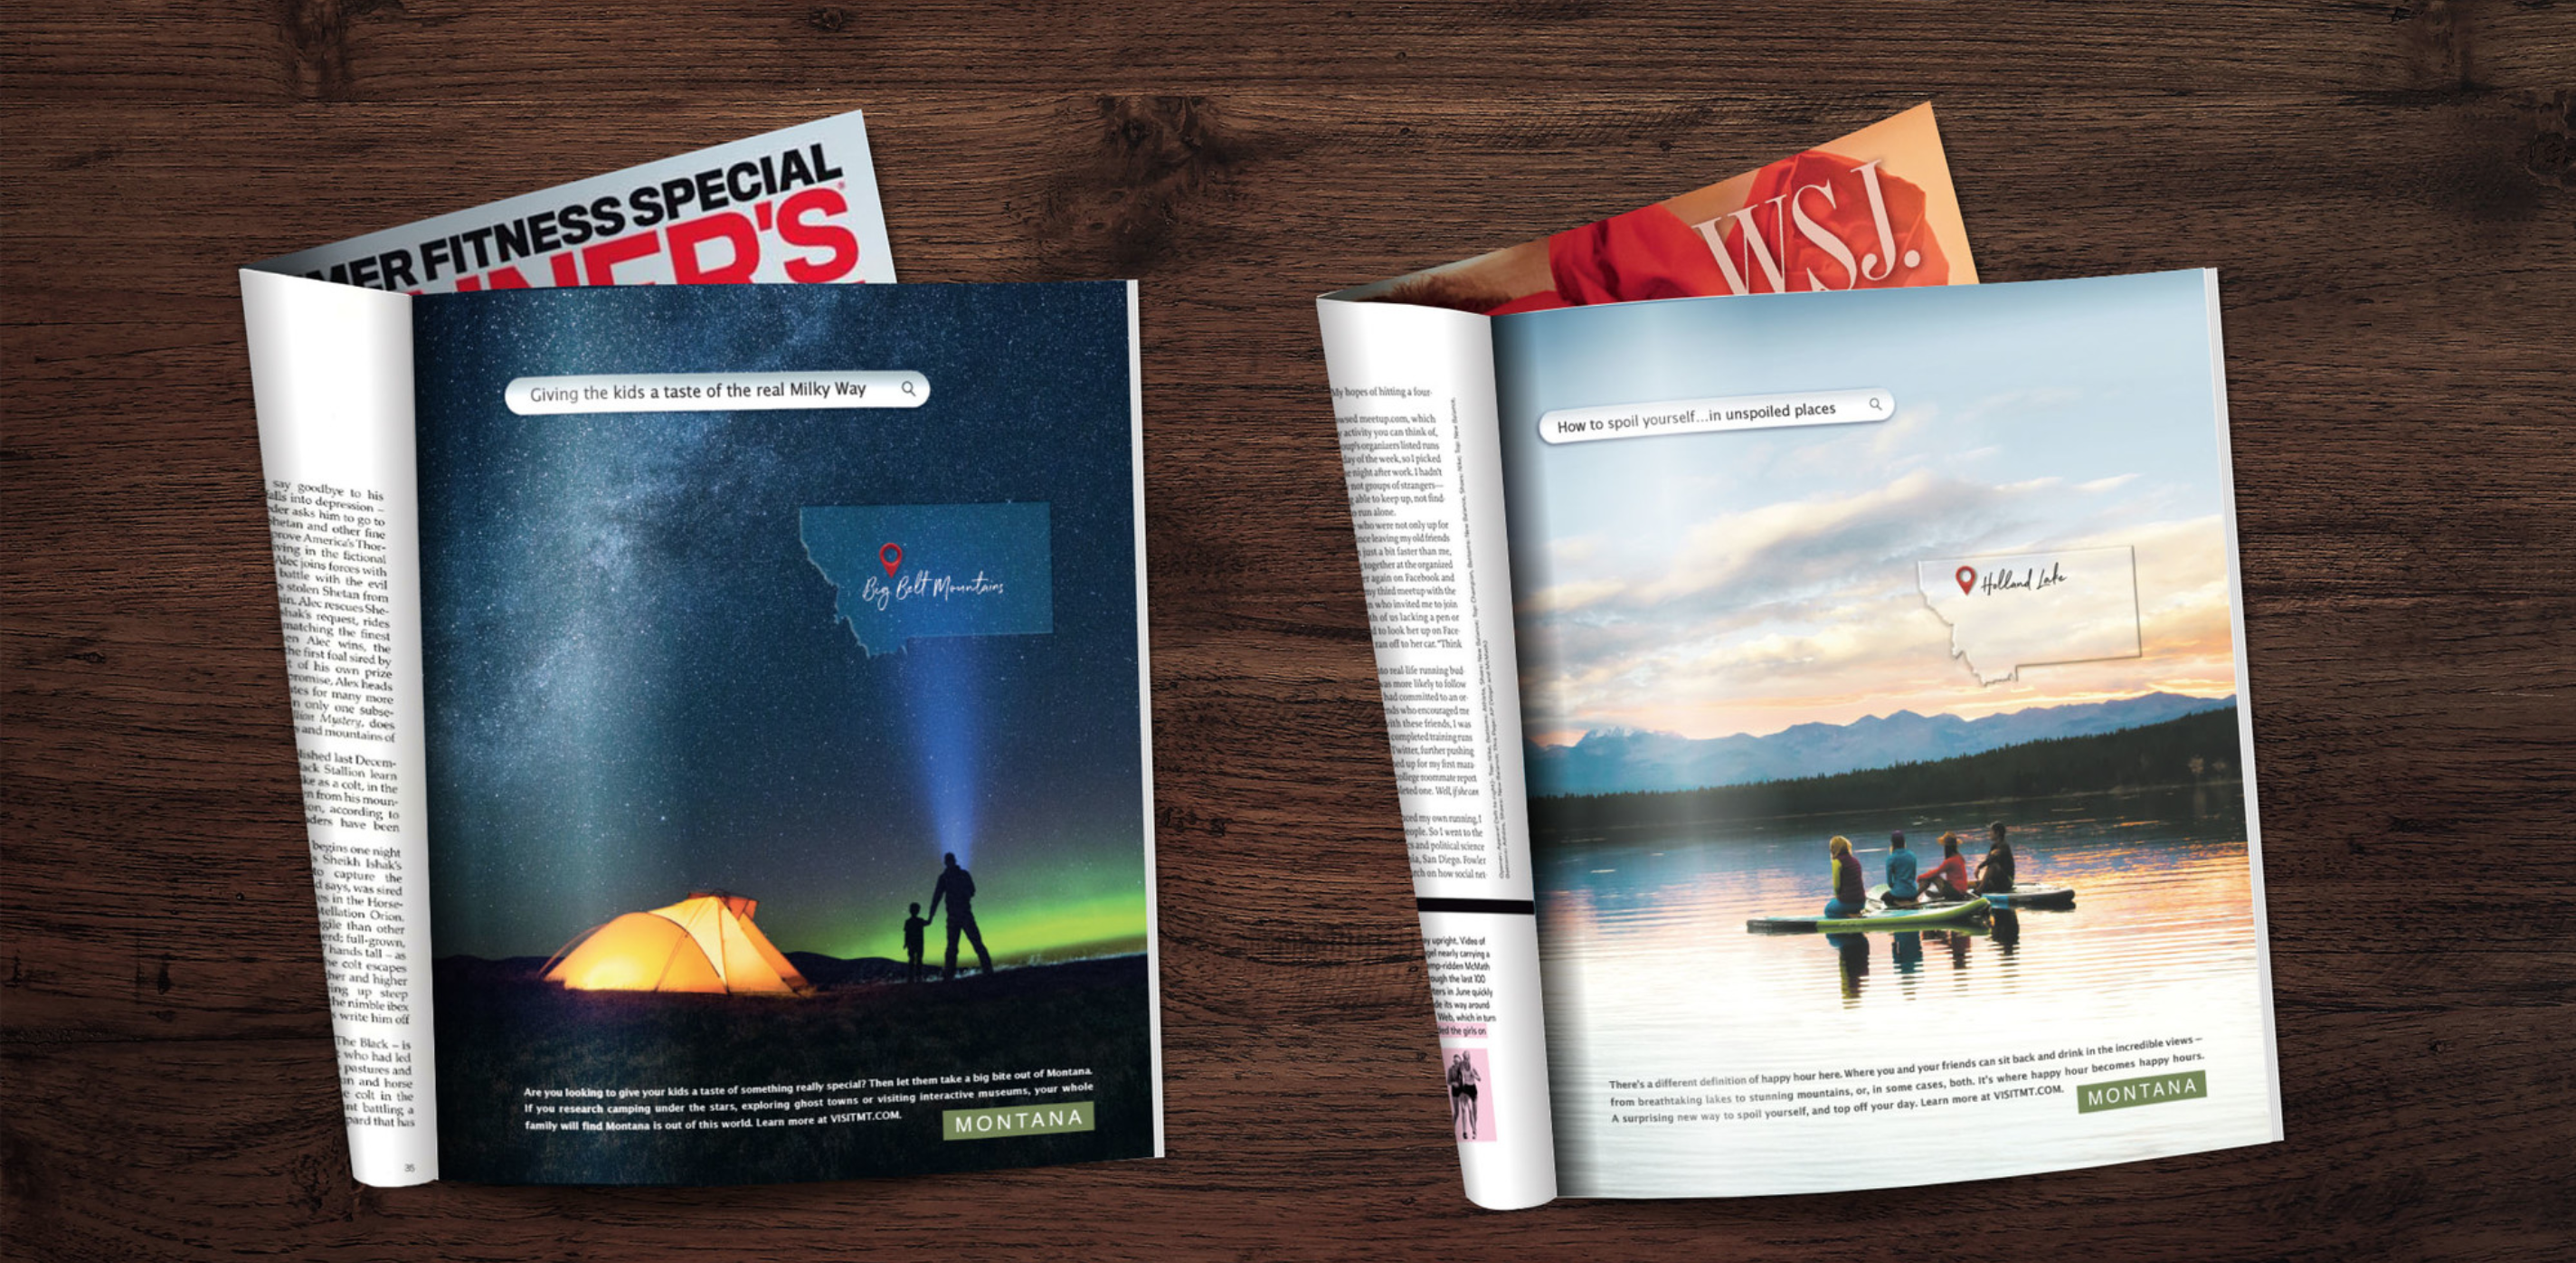 Two open magazines showing full-page print publications for the Montana Moments campaign